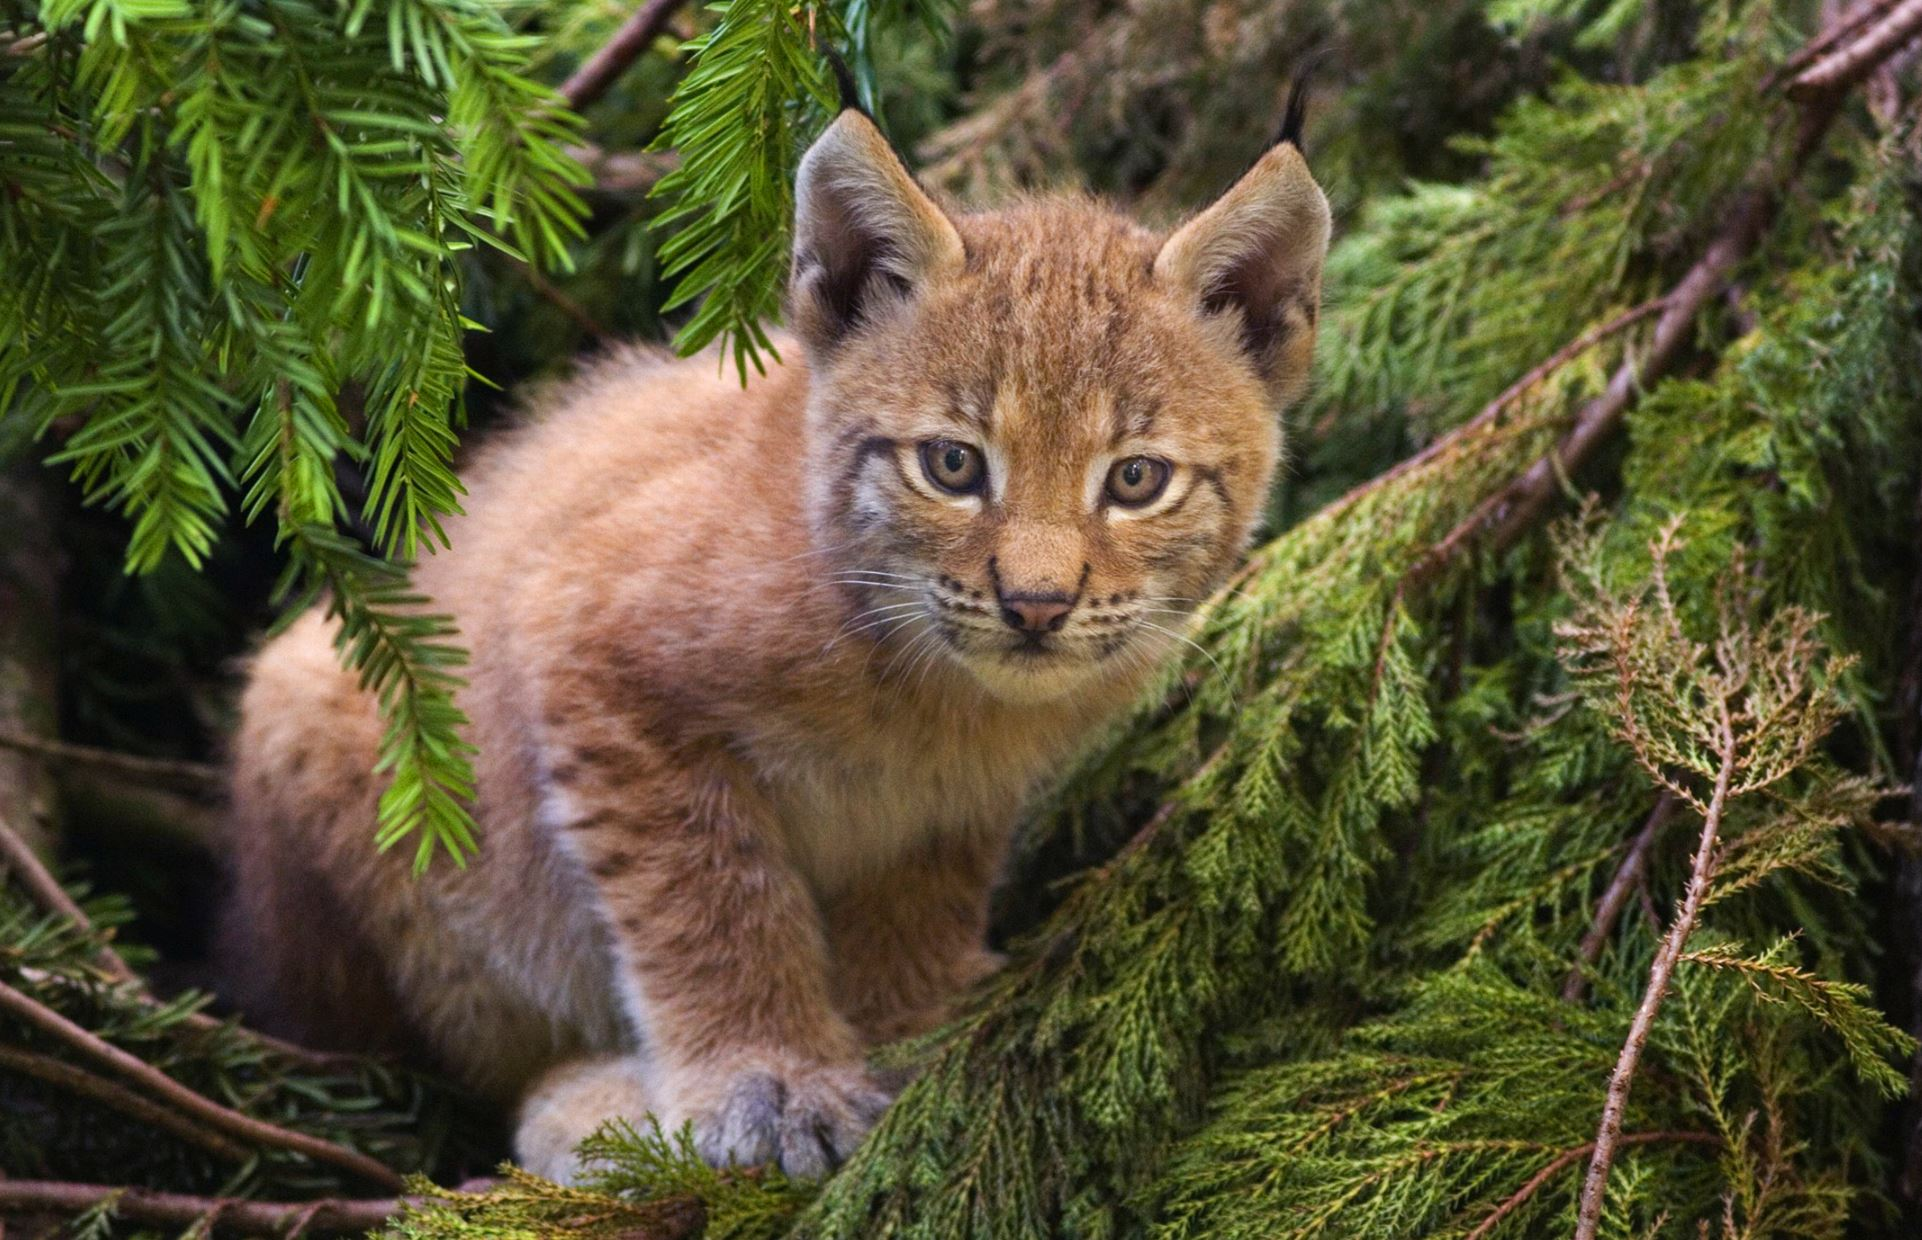 Lynx were driven to extinction in the UK during the Medieval period - Image Credit:  Bernard Landgraf via Wikimedia Commons